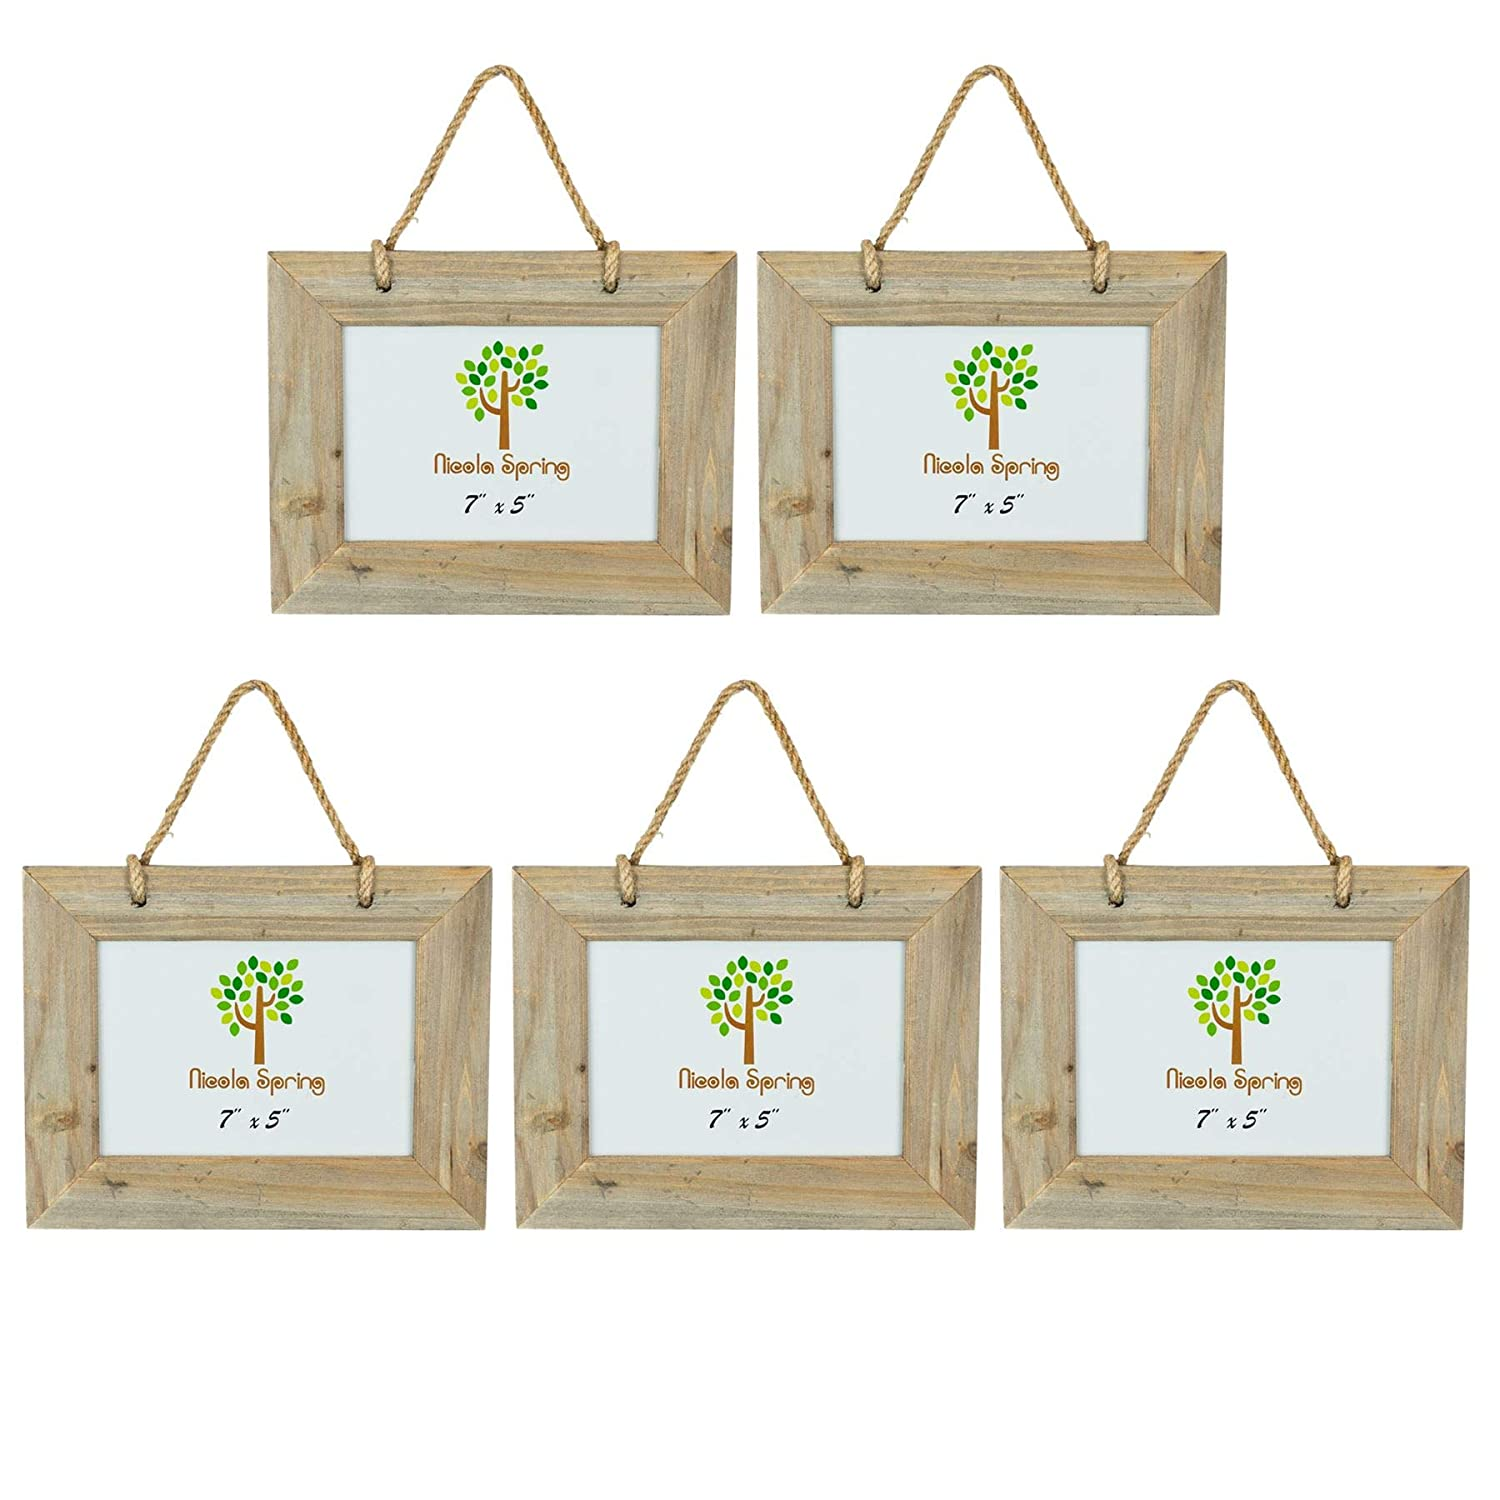 Pack of 5 Nicola Spring Wooden Hanging Picture Photo Frame Wall Display 7 x 5